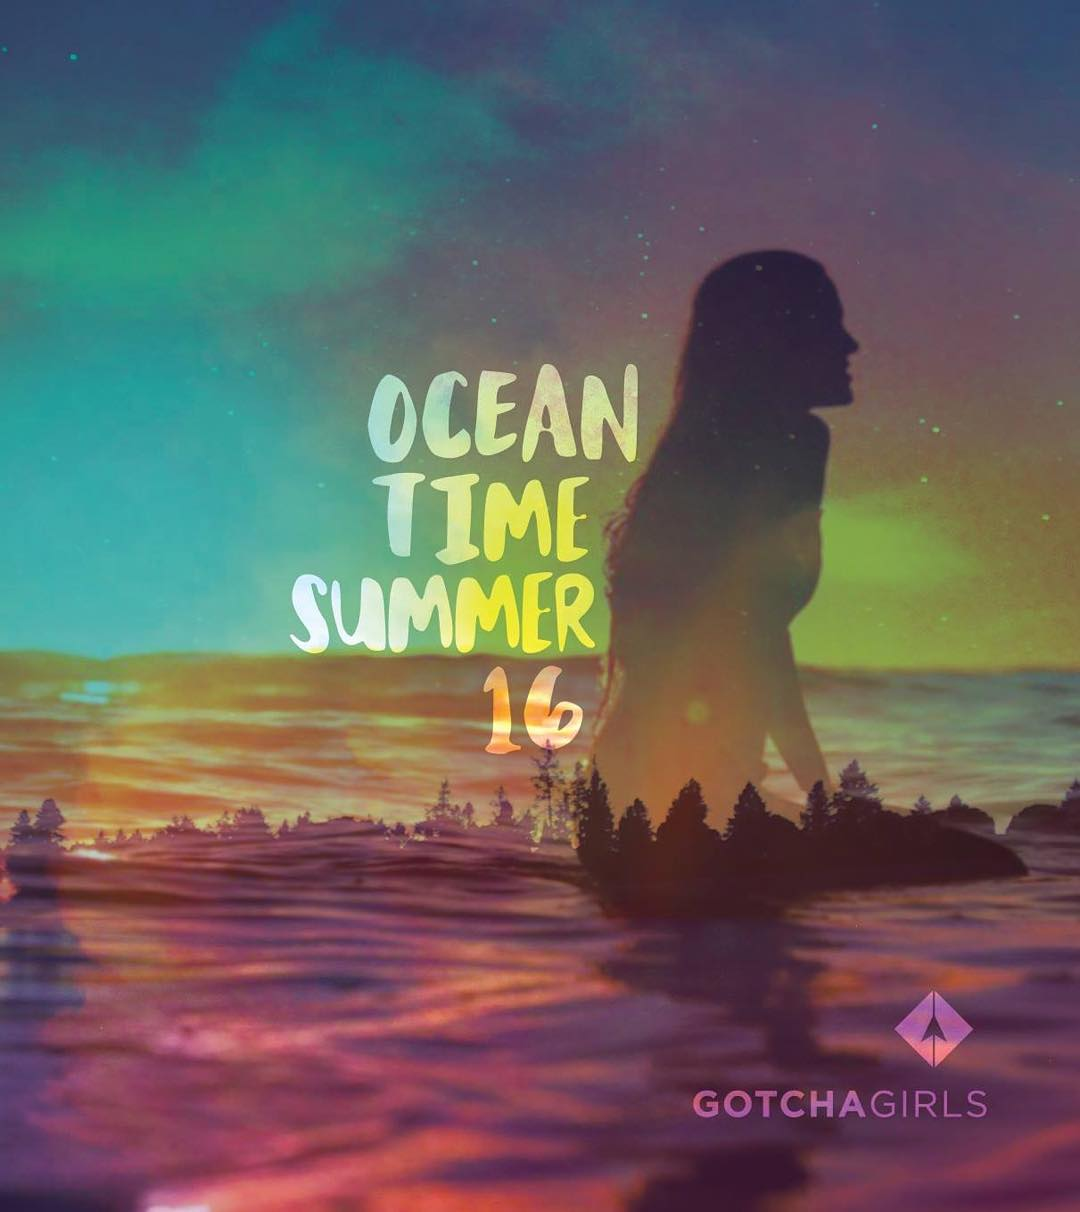 Ocean time! The Gotcha Girls summer 16 collection - #gotcha #girls #GG #doubleg #surfergirl